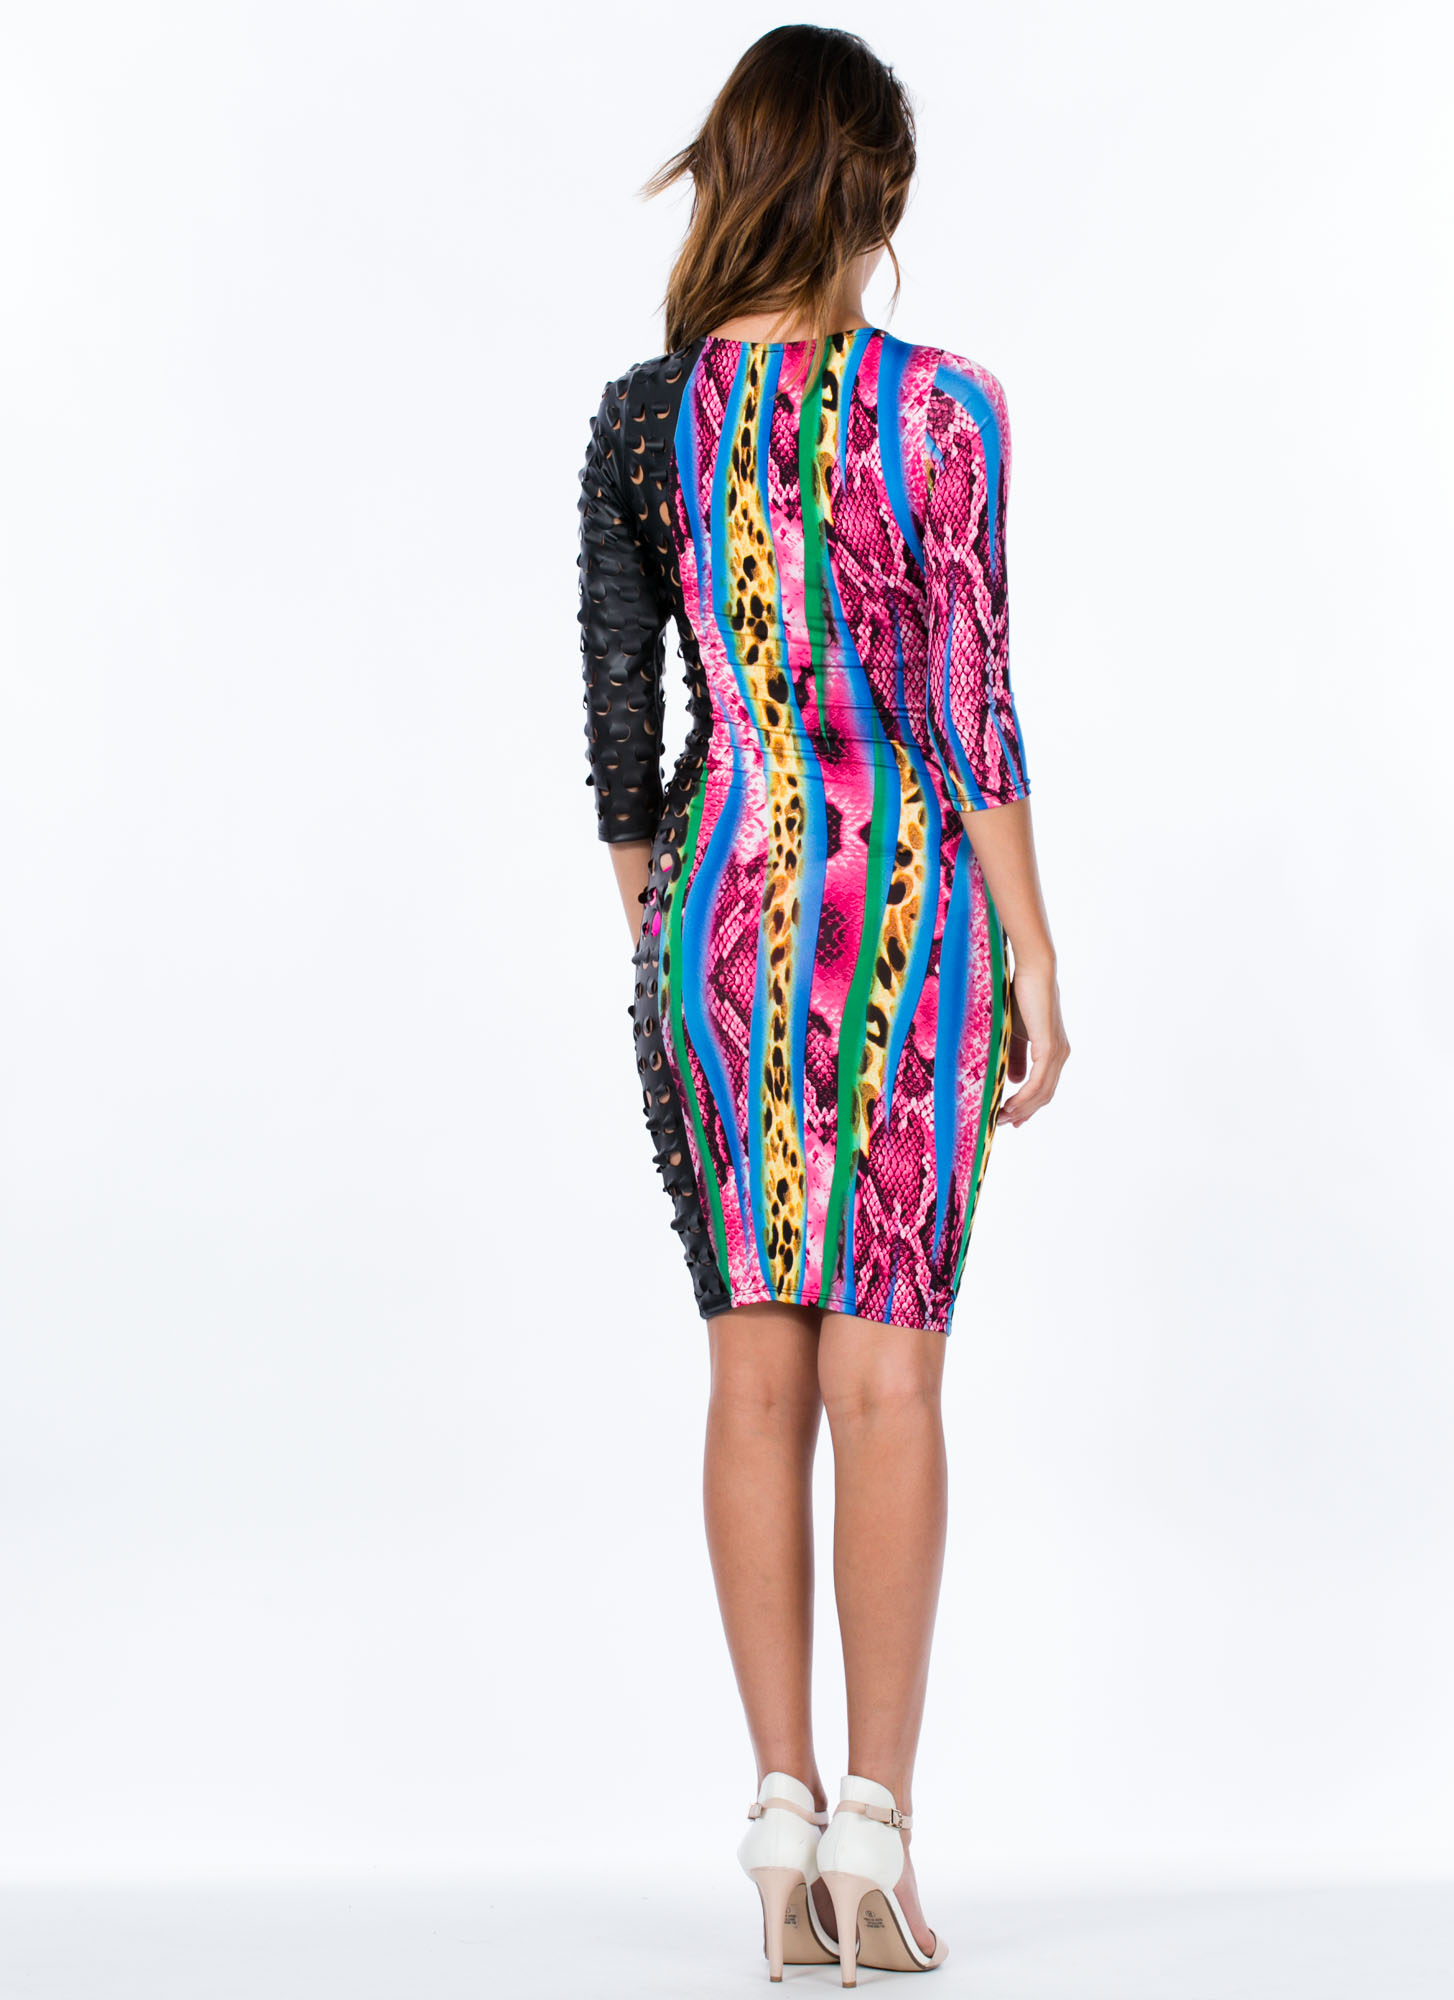 Curveball Punched Animal Print Dress PINKBLACK